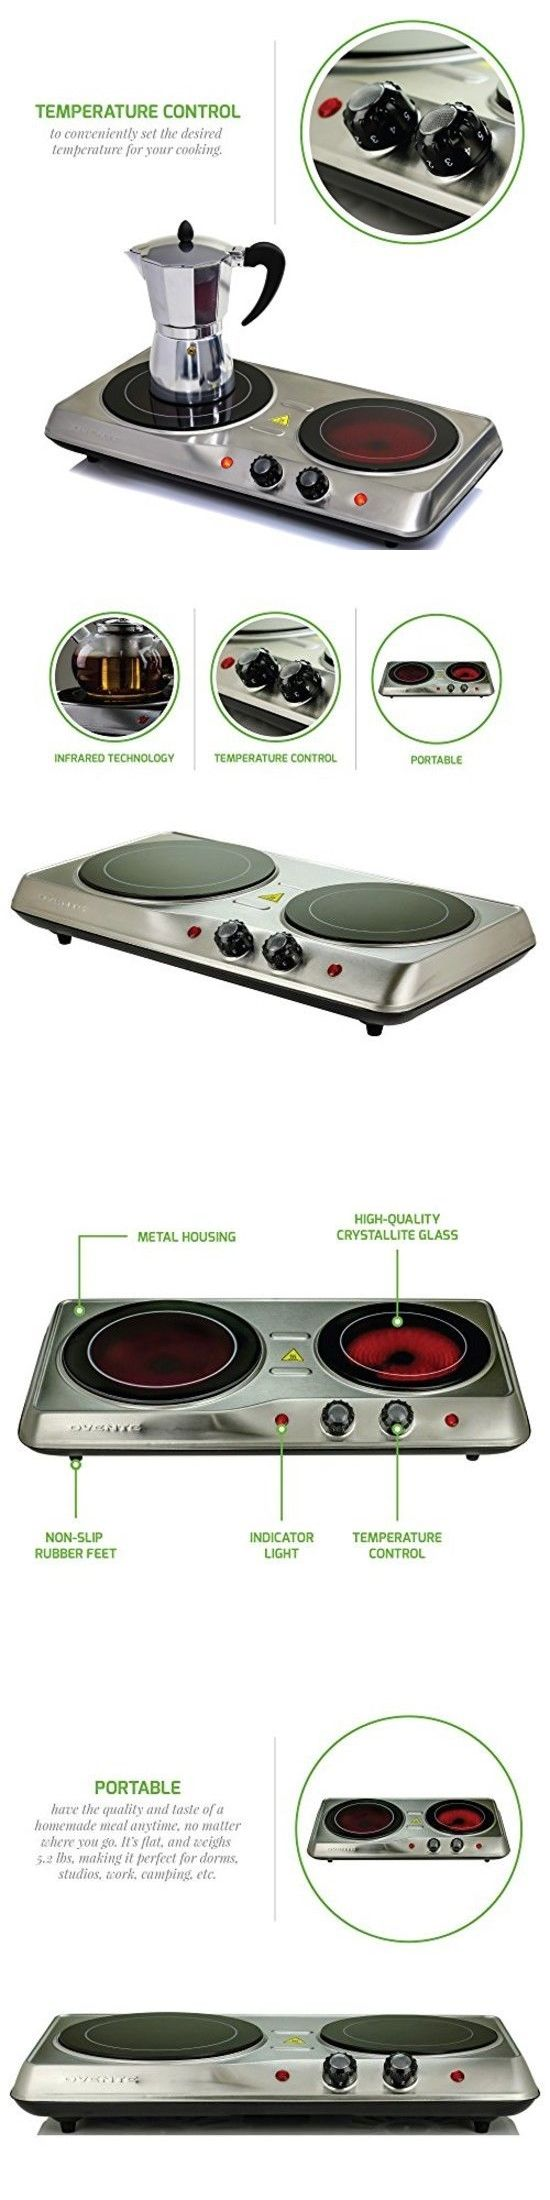 531092cc040 Burners and Hot Plates 177751  Electric Cooktop Burner Infrared Ceramic  Glass Hot Plate 2 Two Cooking Stove New -  BUY IT NOW ONLY   55.1 on  eBay   burners ...